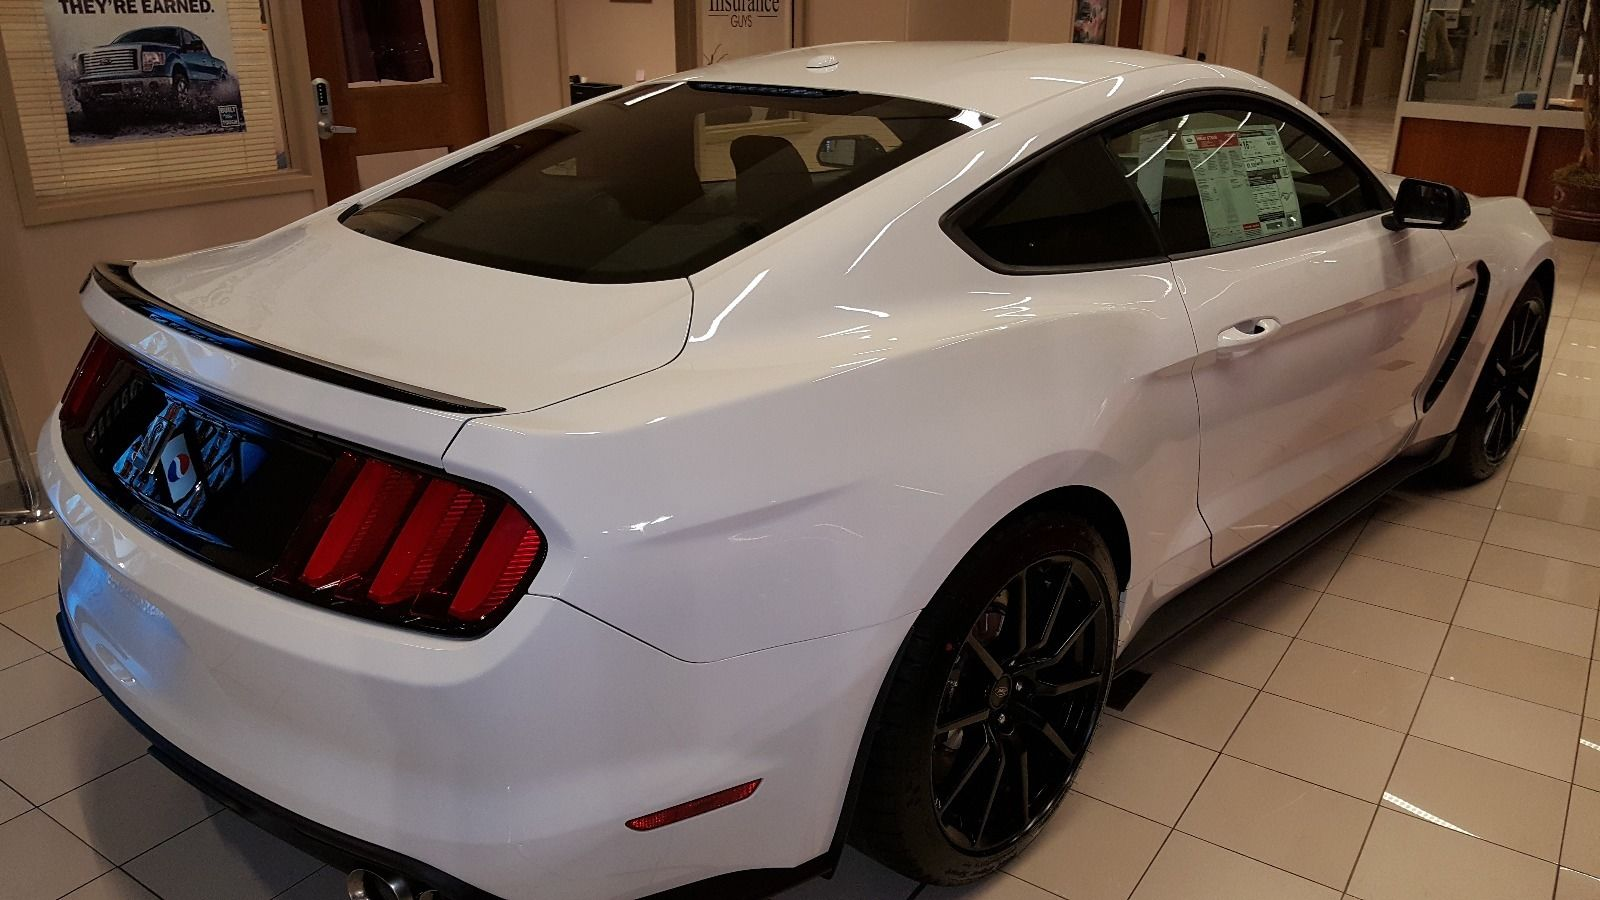 All Types mustang gt350 2016 : 2016 Ford Mustang GT350 - $67,459.99 - Attachments